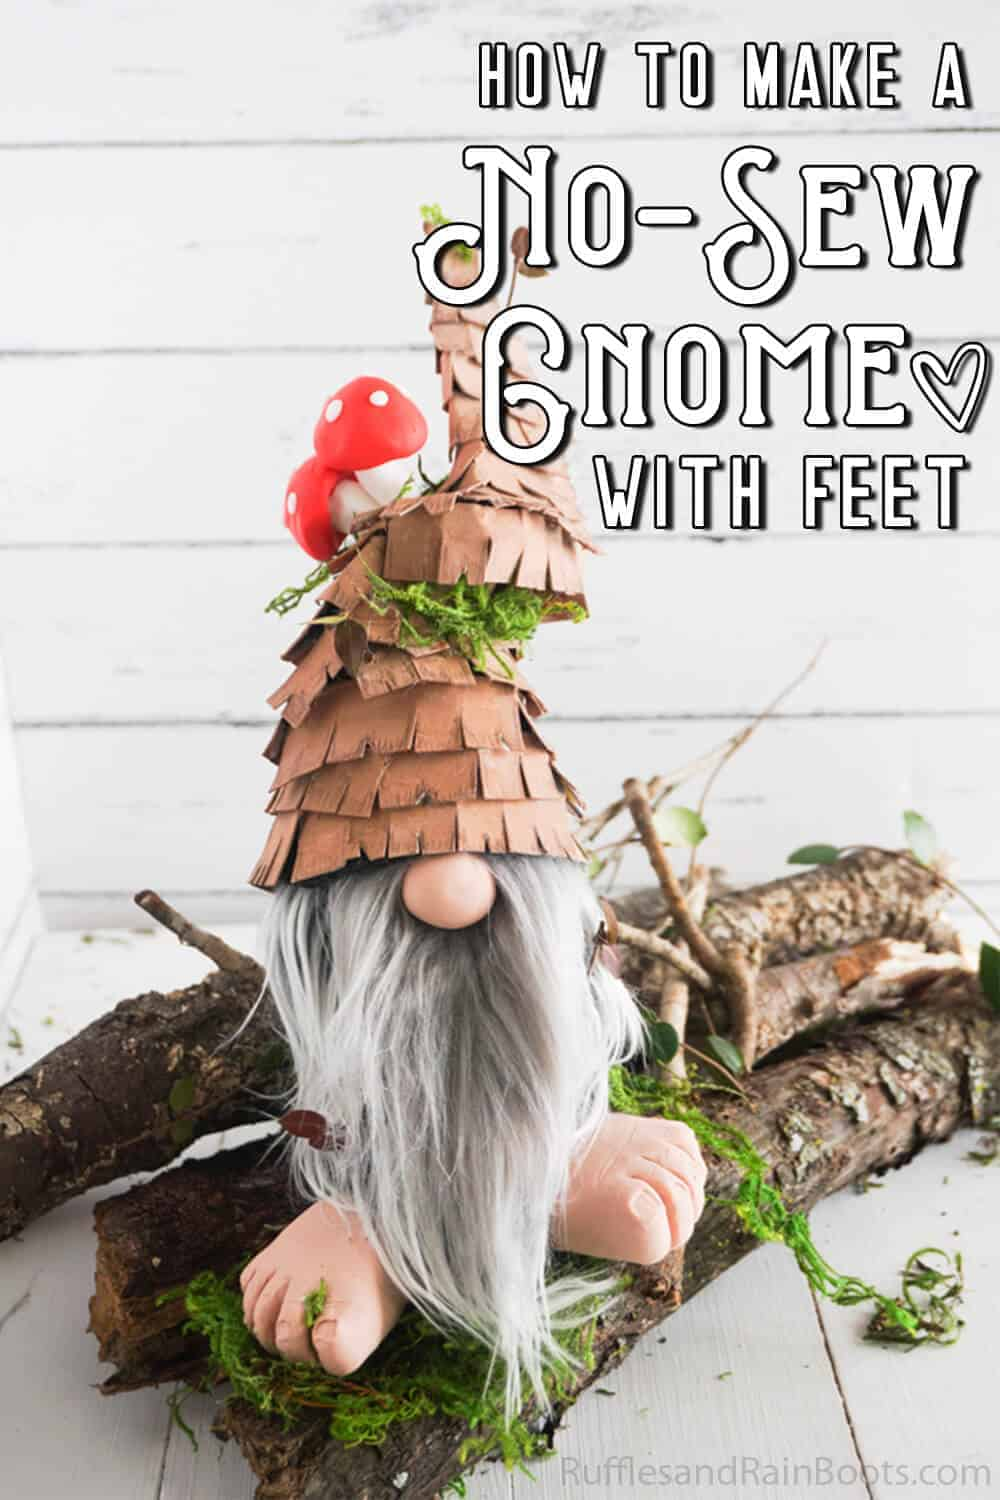 front view of gnome with feet and mushrooms with text which reads how to make a no-sew gnome with feet